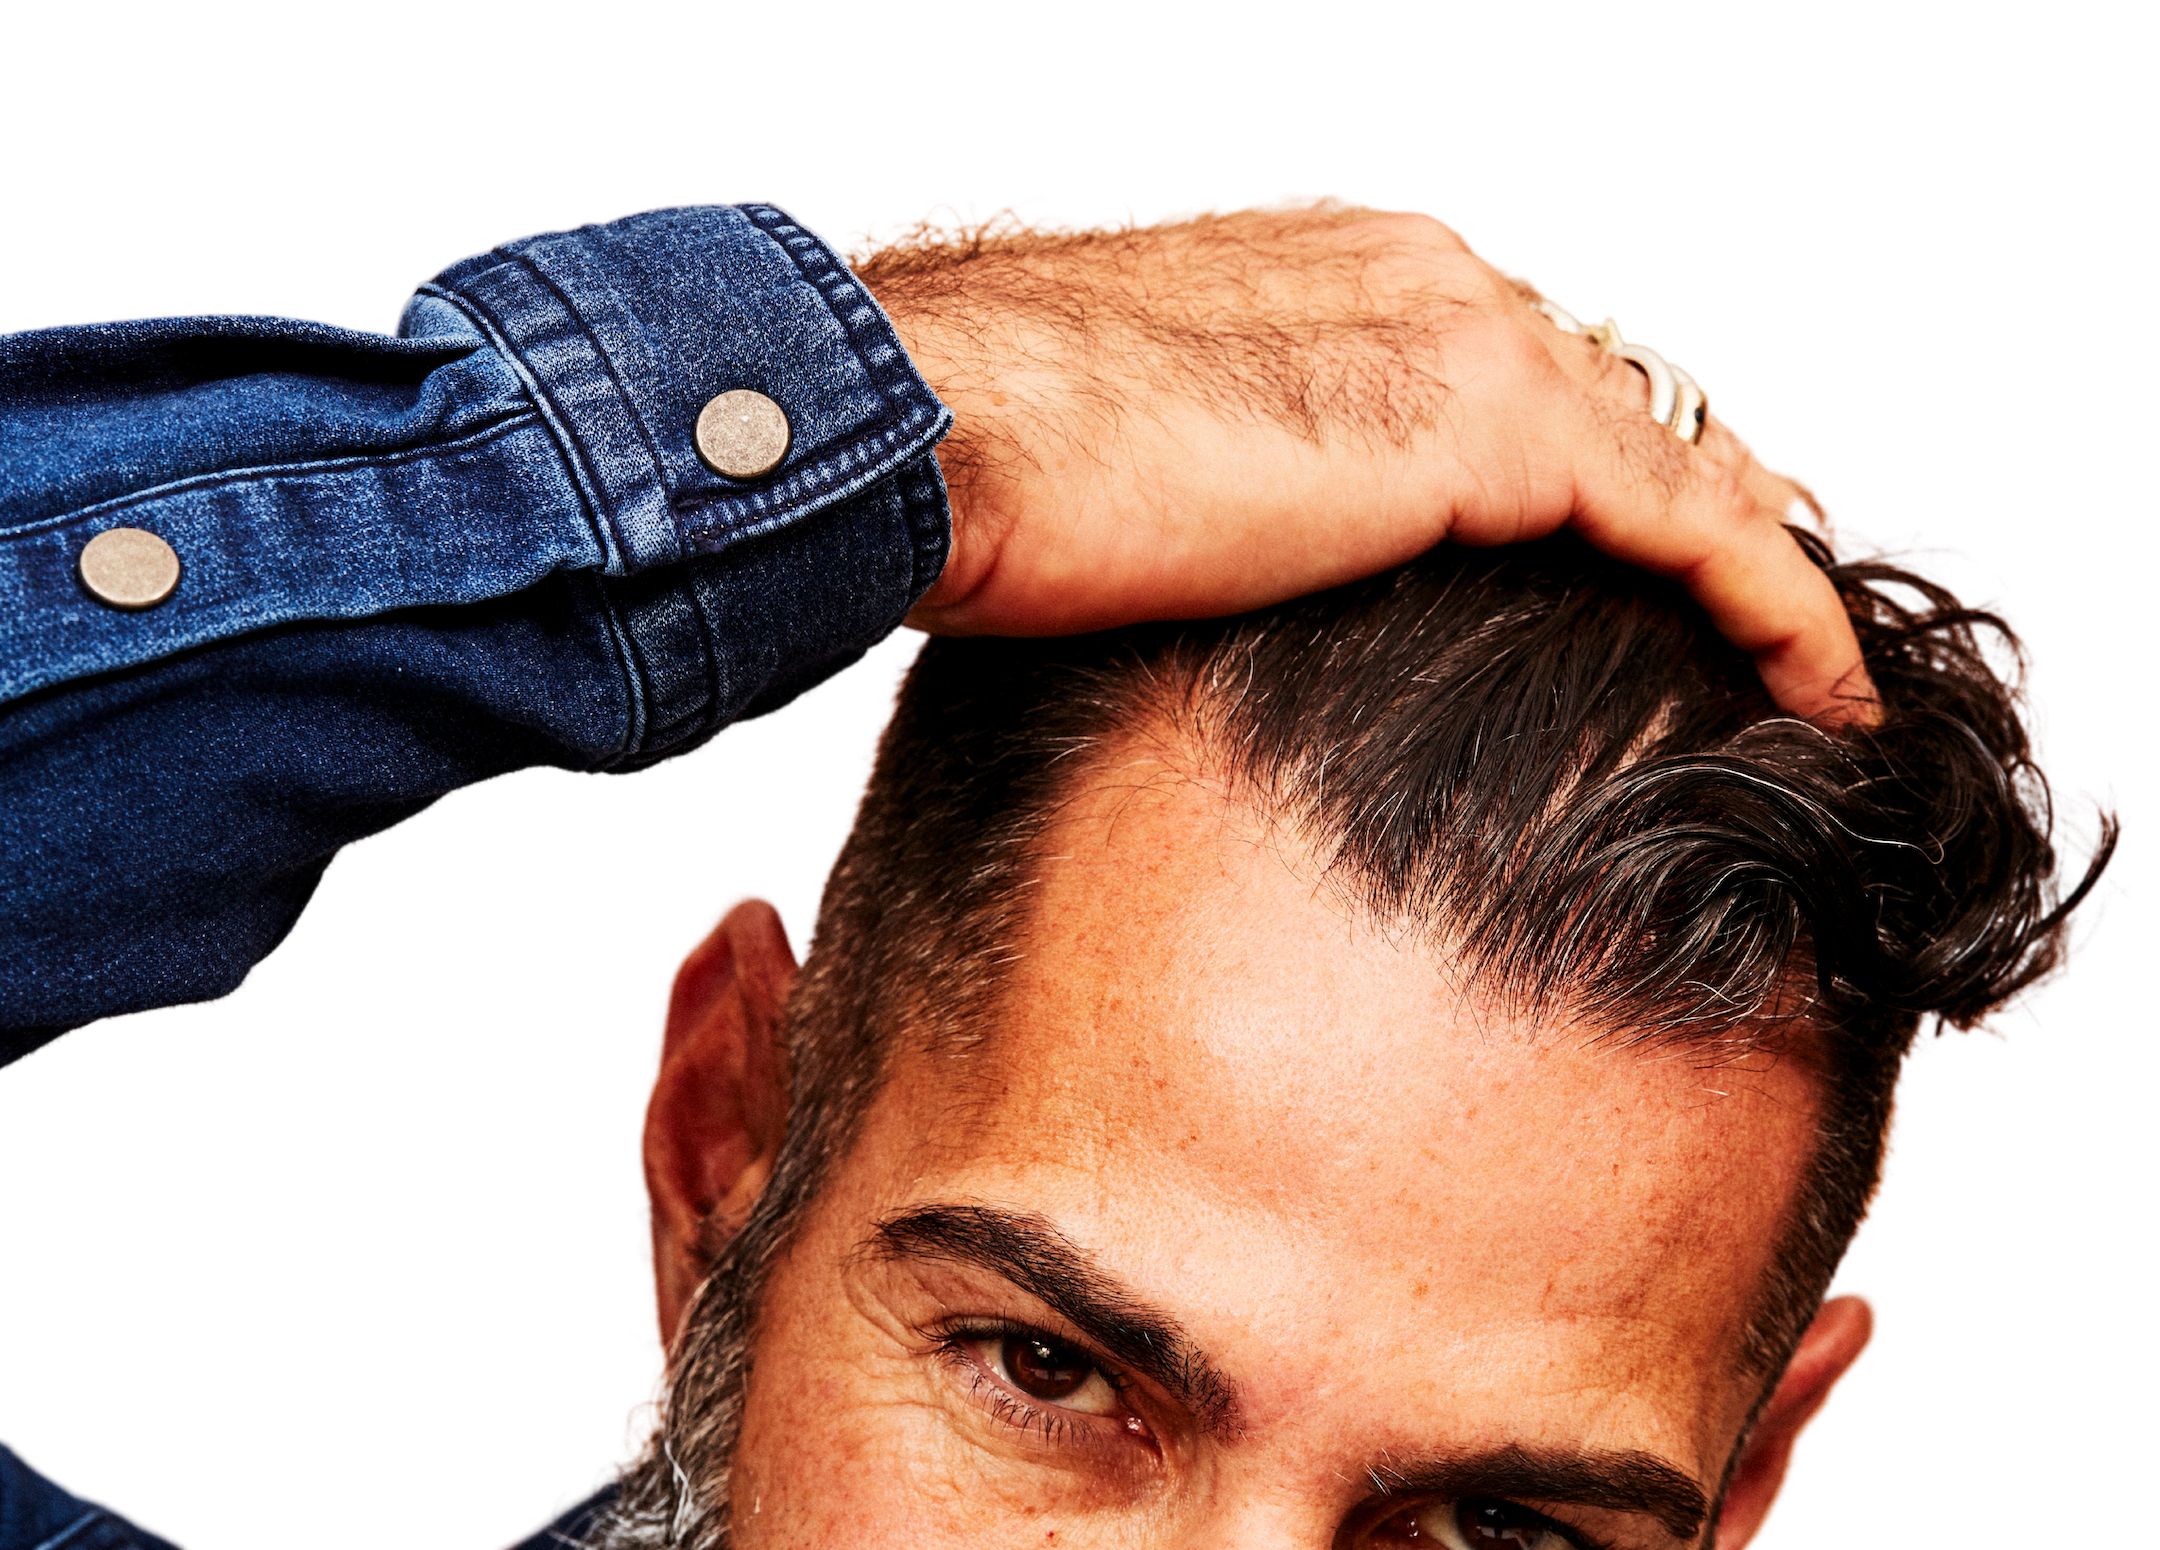 Man with hand in hair